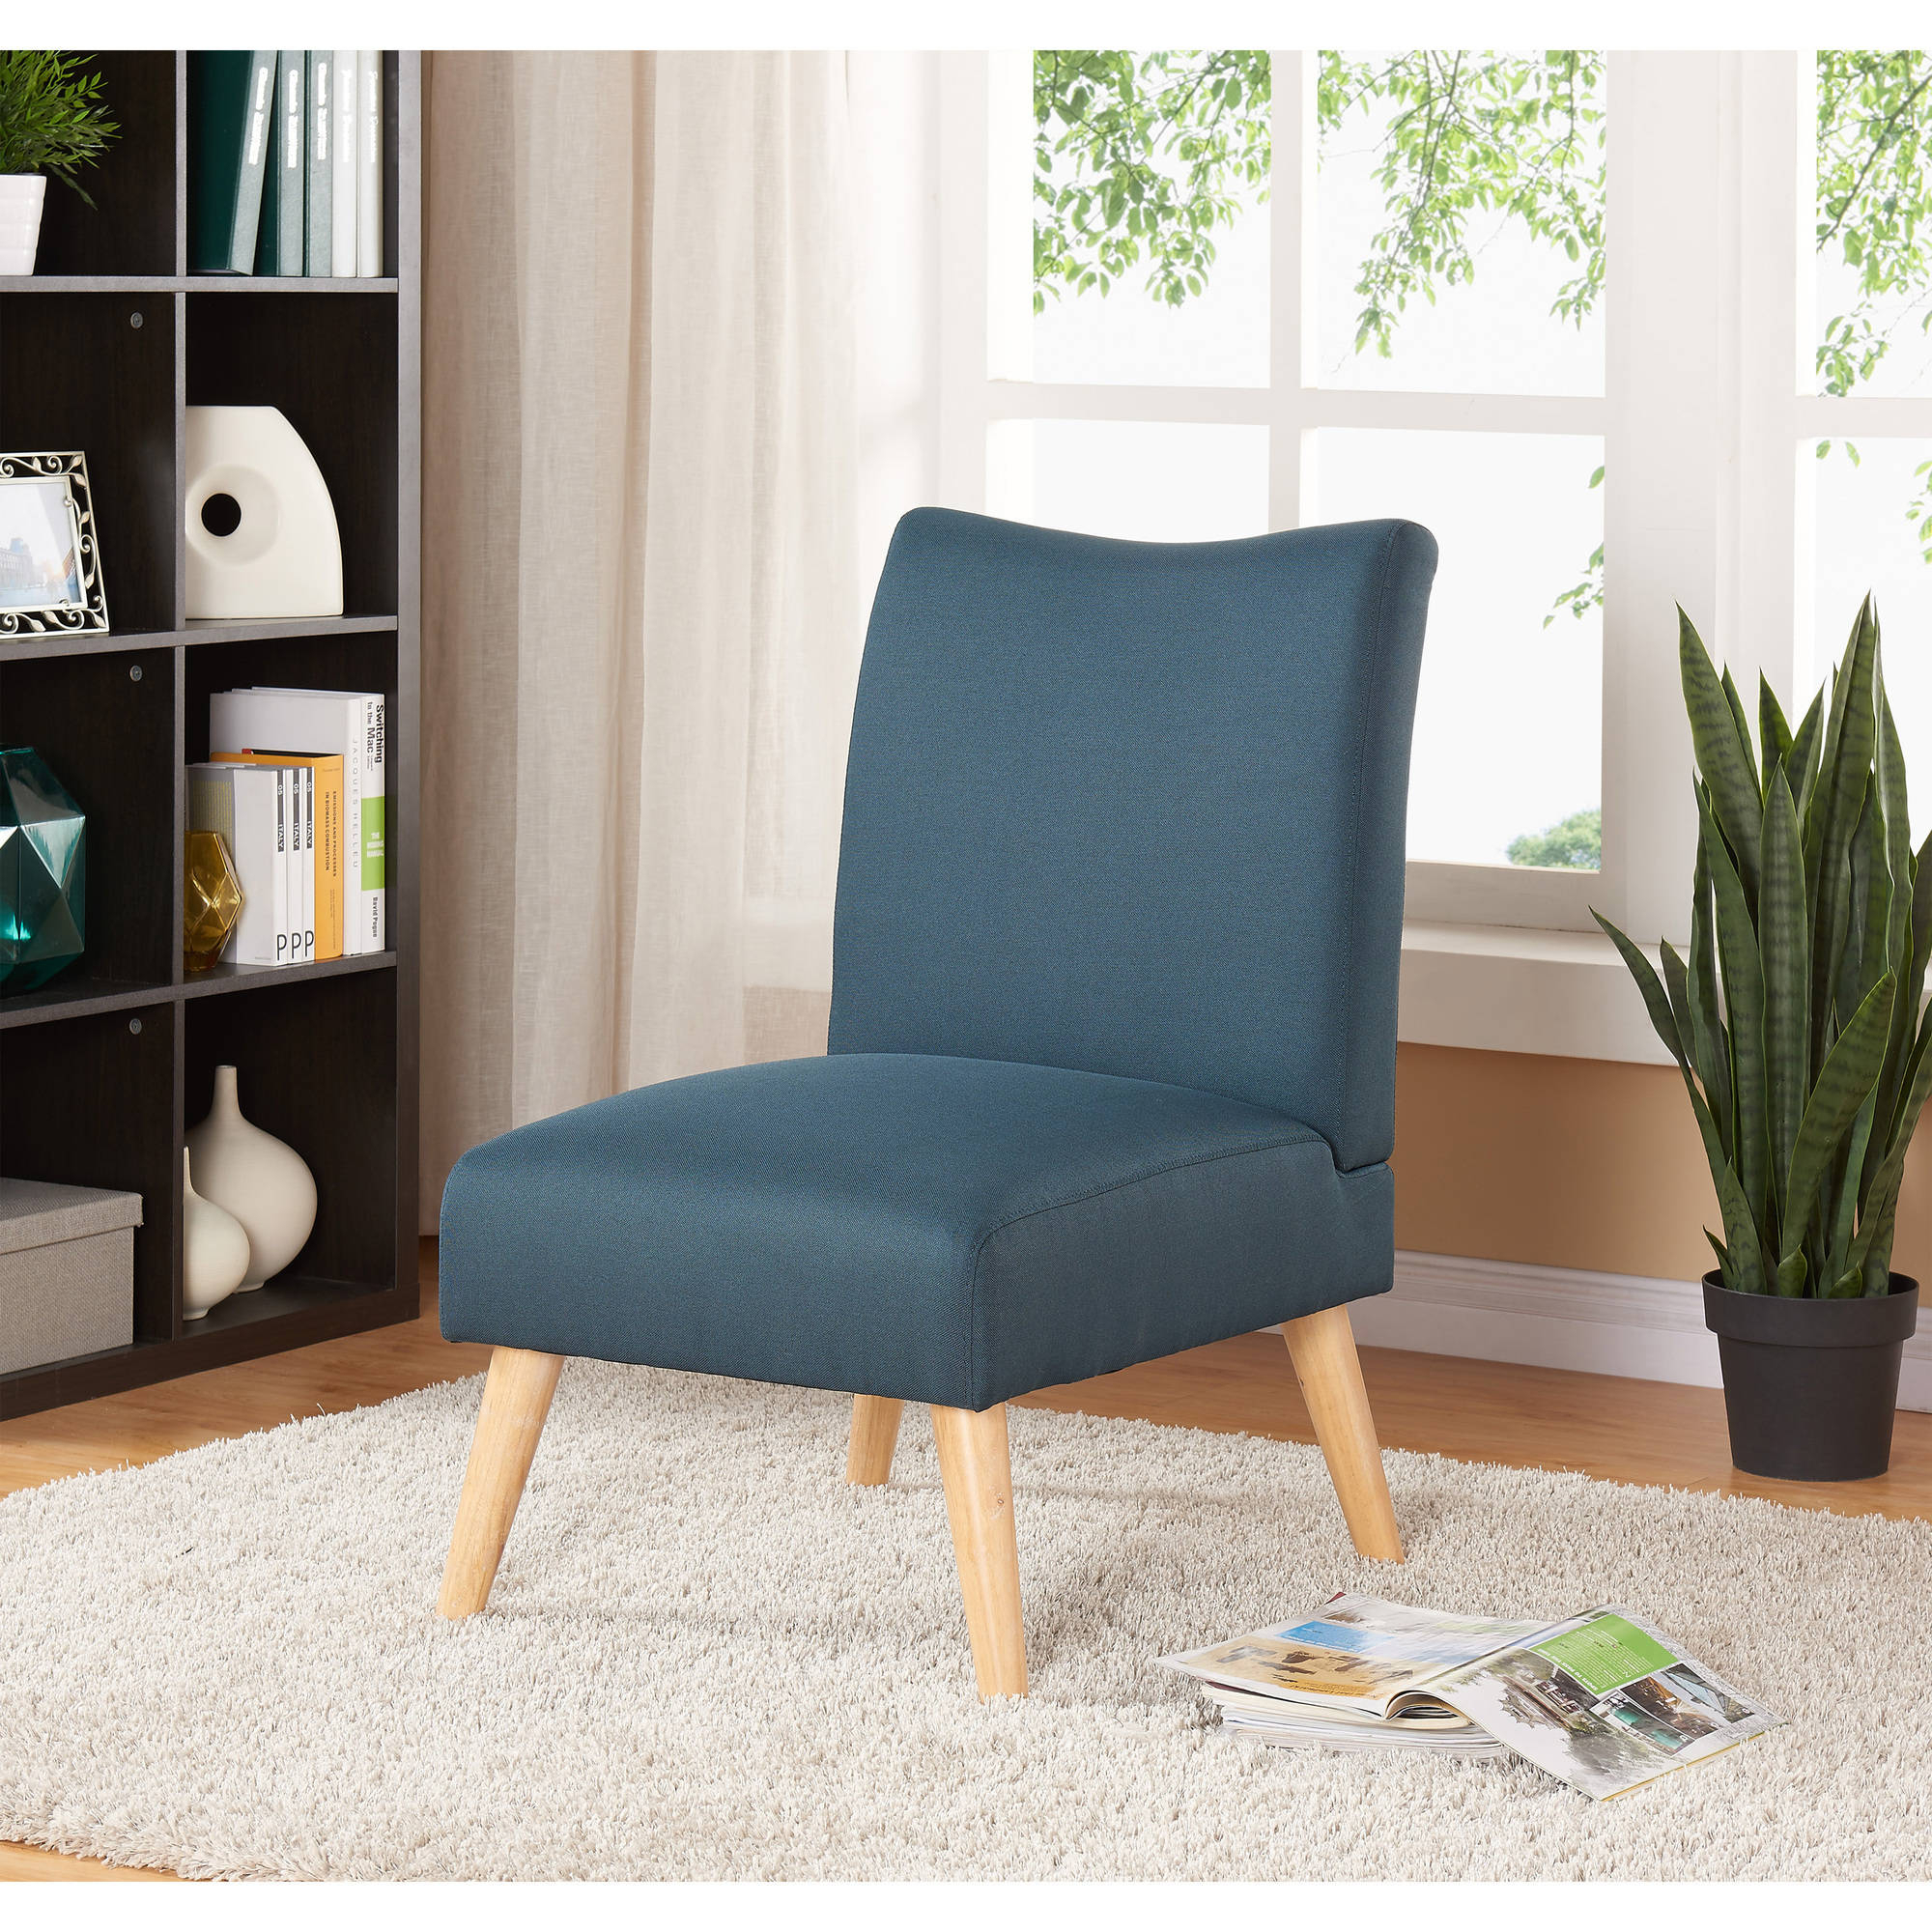 Mainstays Solid Armless Slipper Chair, Multiple Colors For Goodyear Slipper Chairs (View 2 of 15)